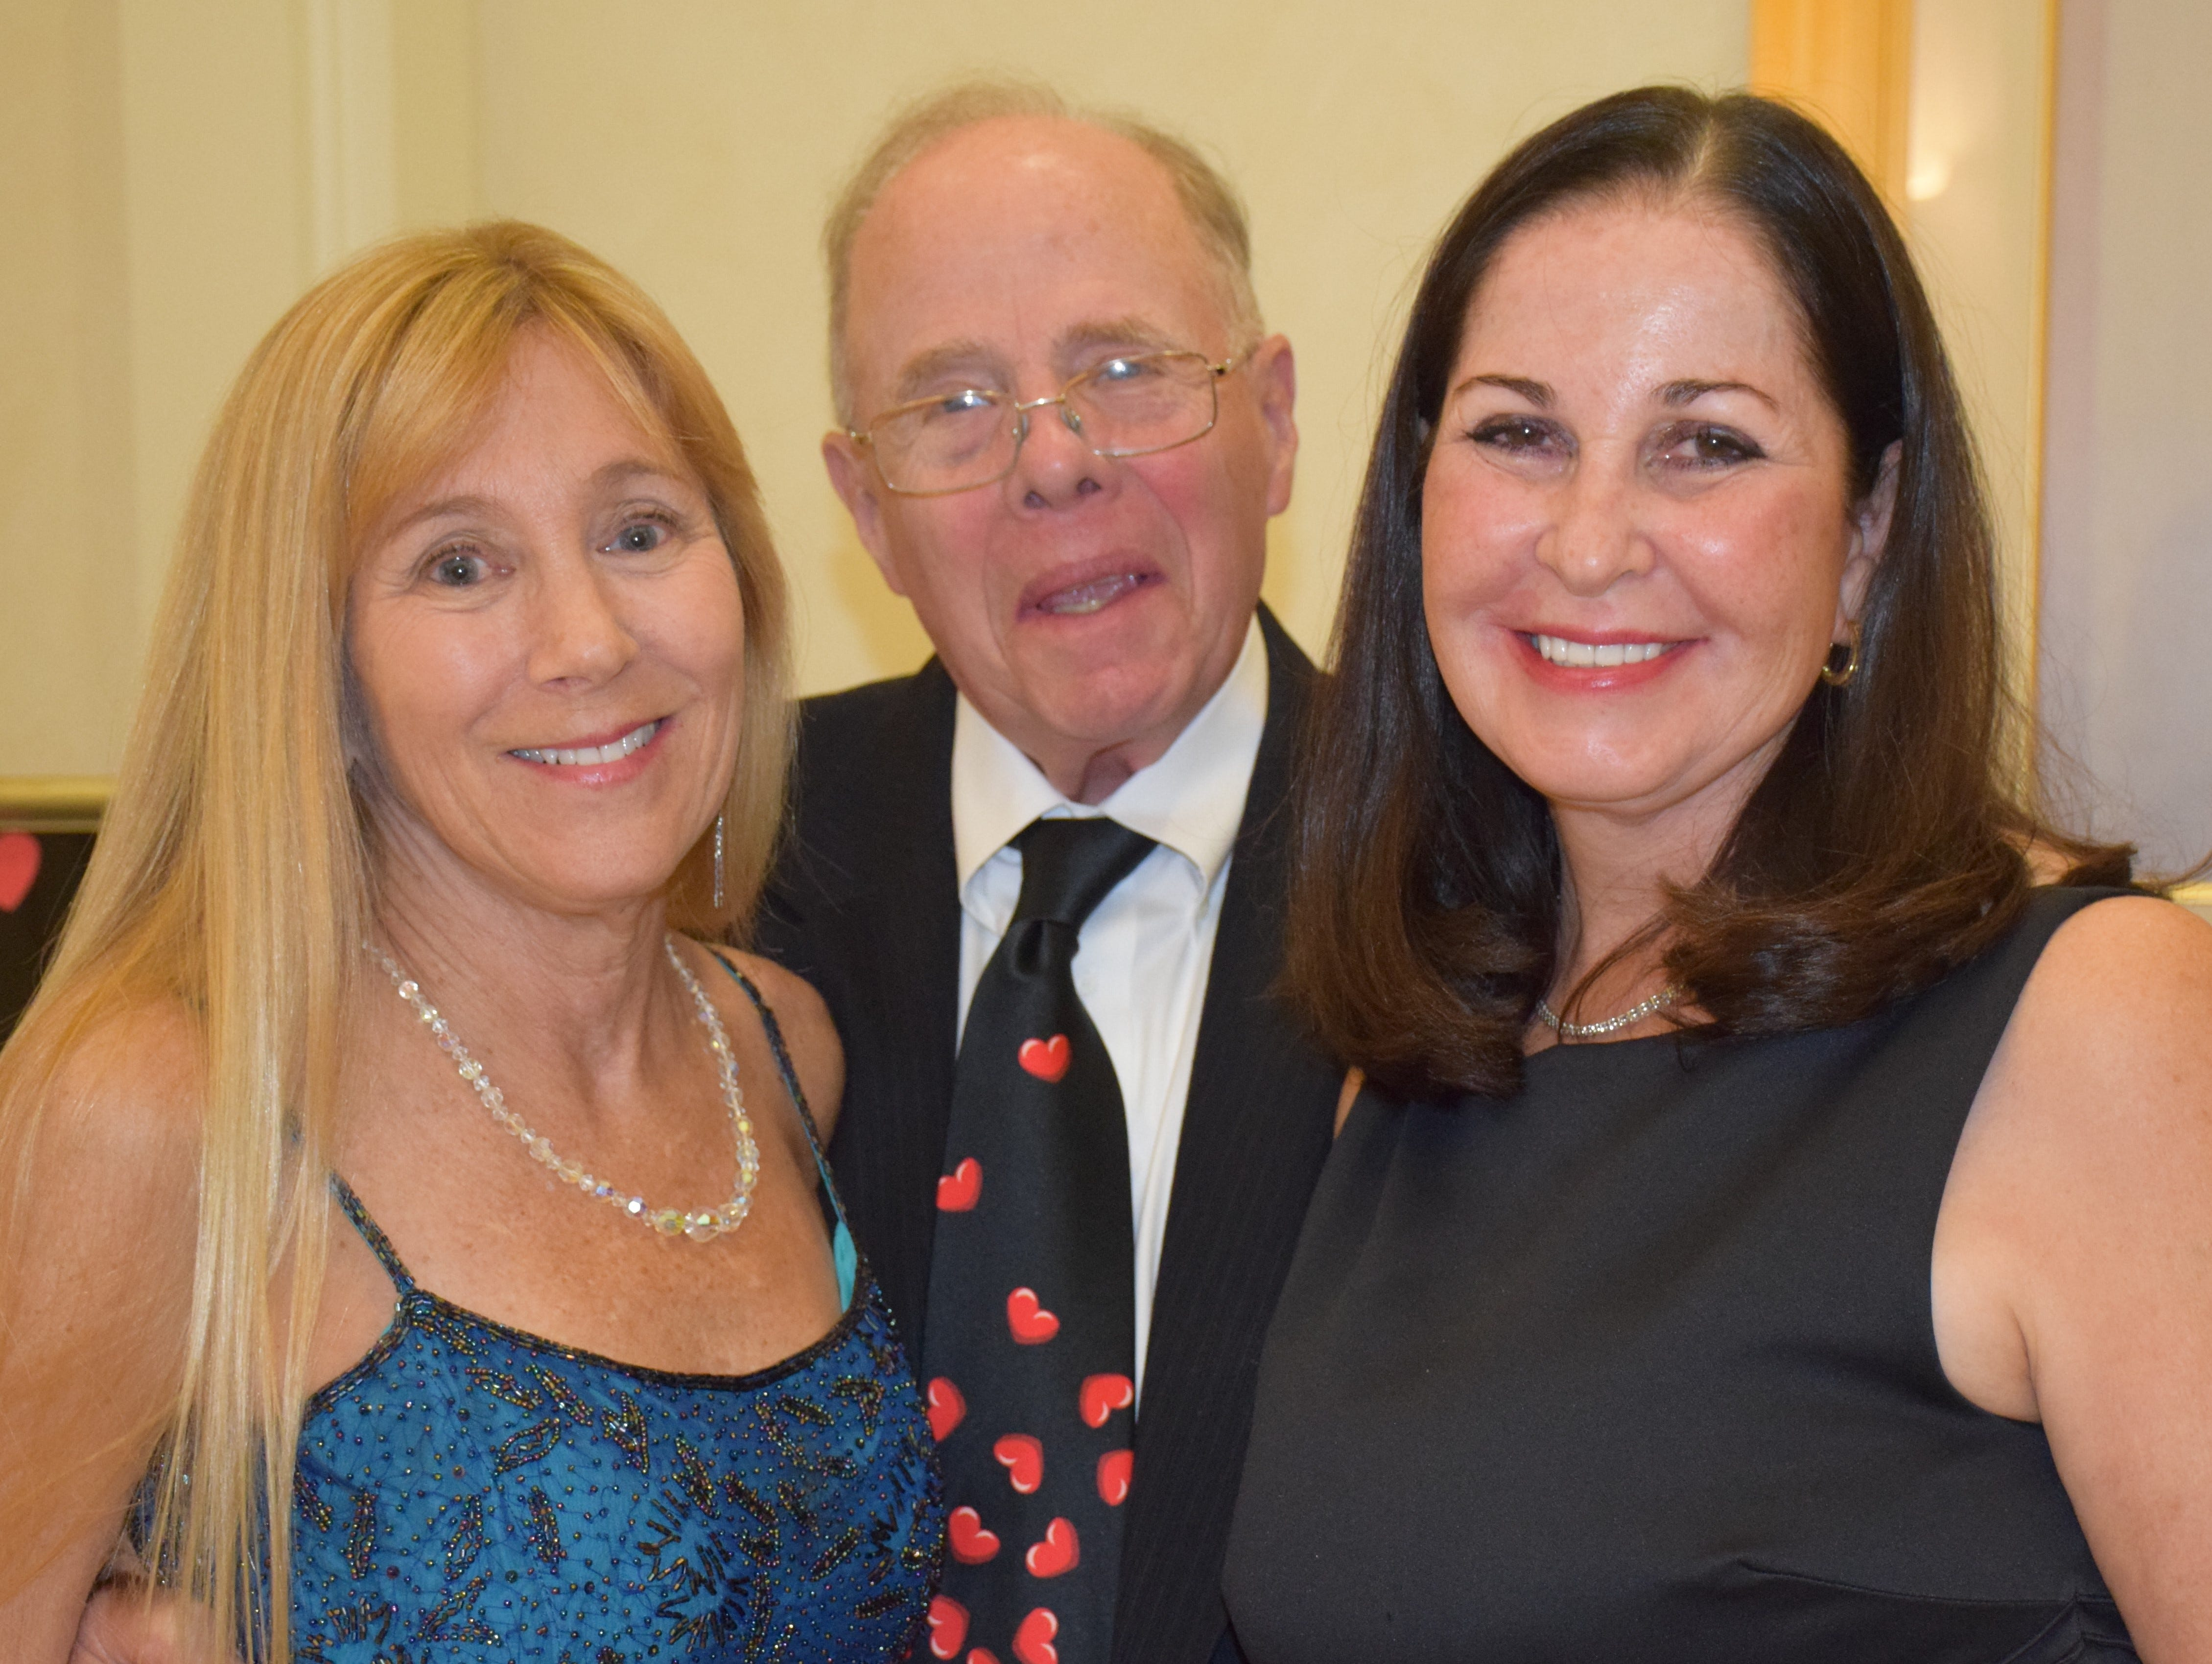 Amy Patterson, Herb Torbin and Mary Ryan